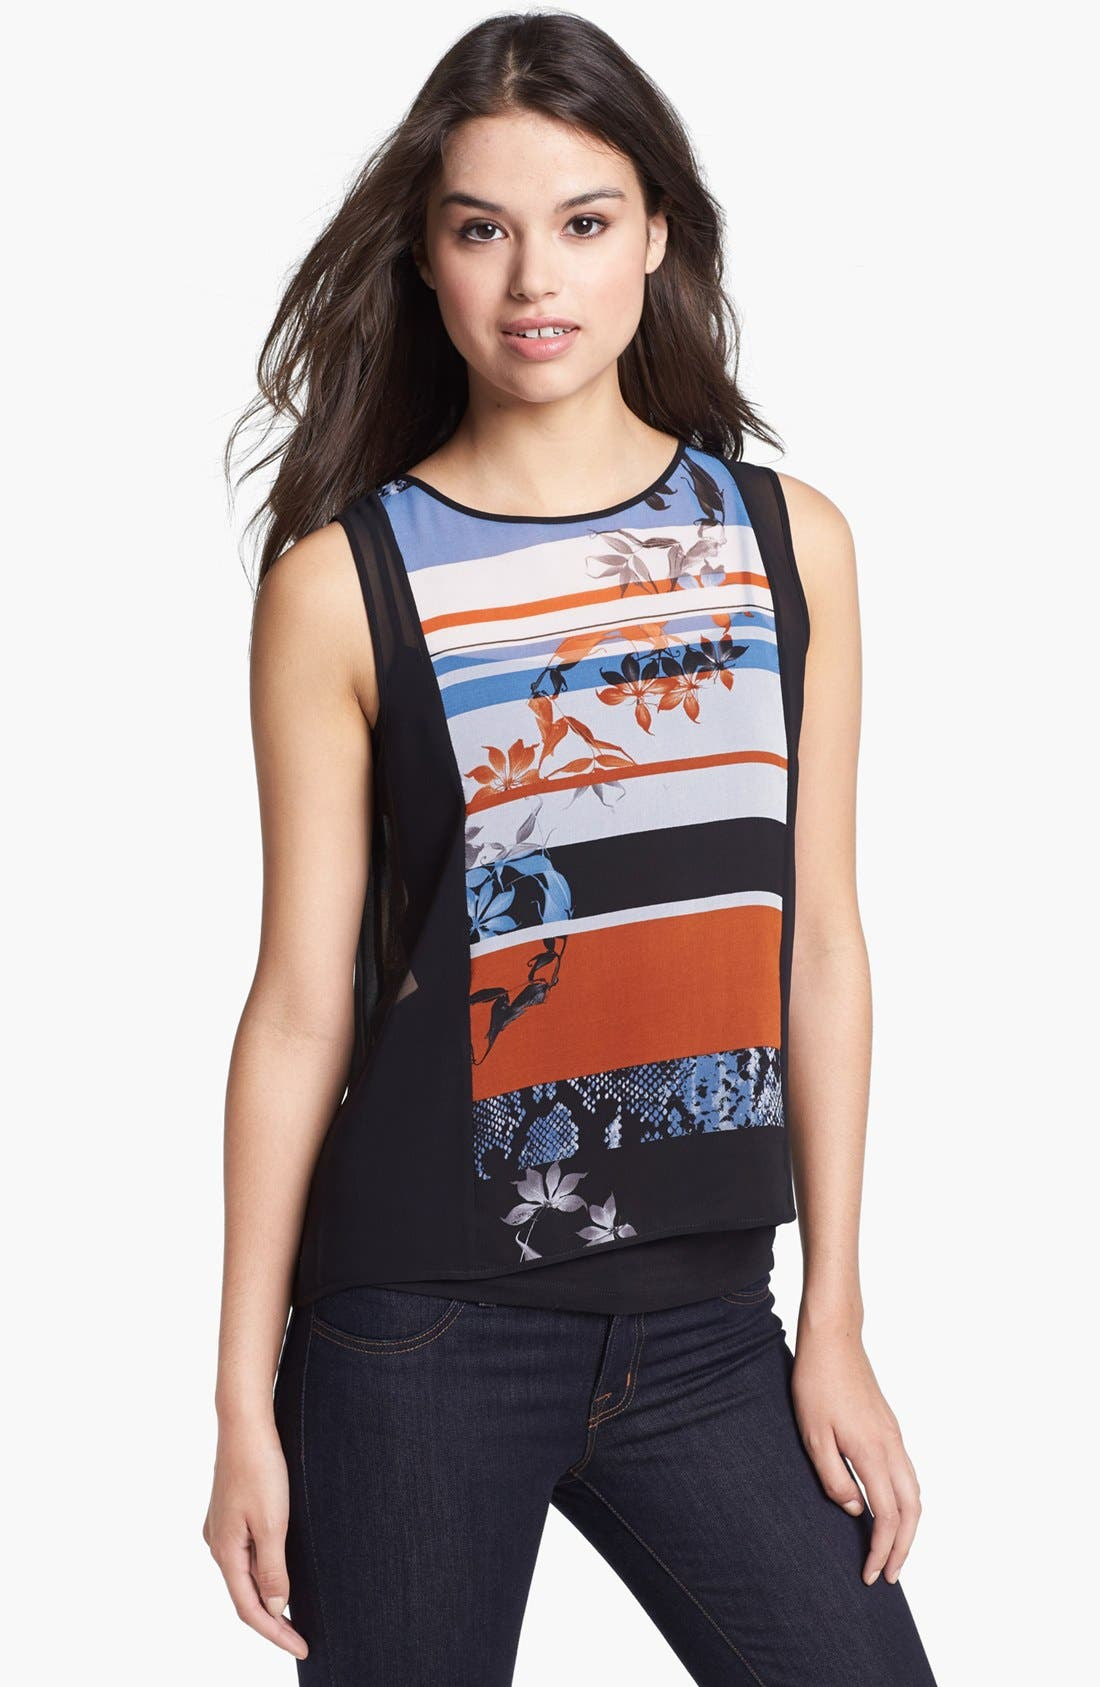 Alternate Image 1 Selected - Kenneth Cole New York 'Feodora' Mixed Print Chiffon Top (Regular & Petite)